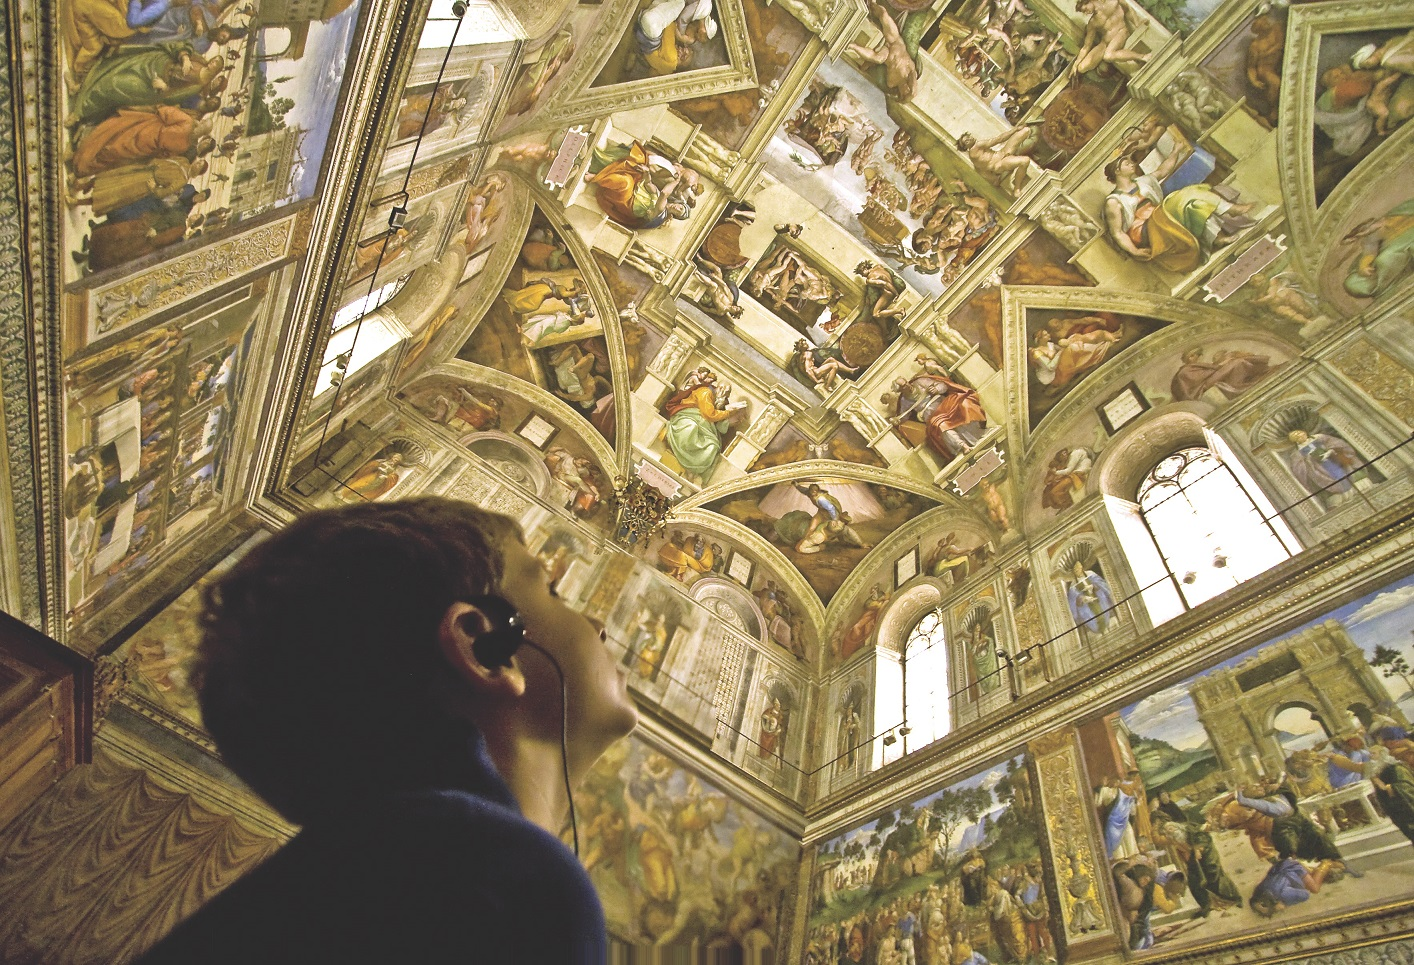 Sistine Chapel after hours